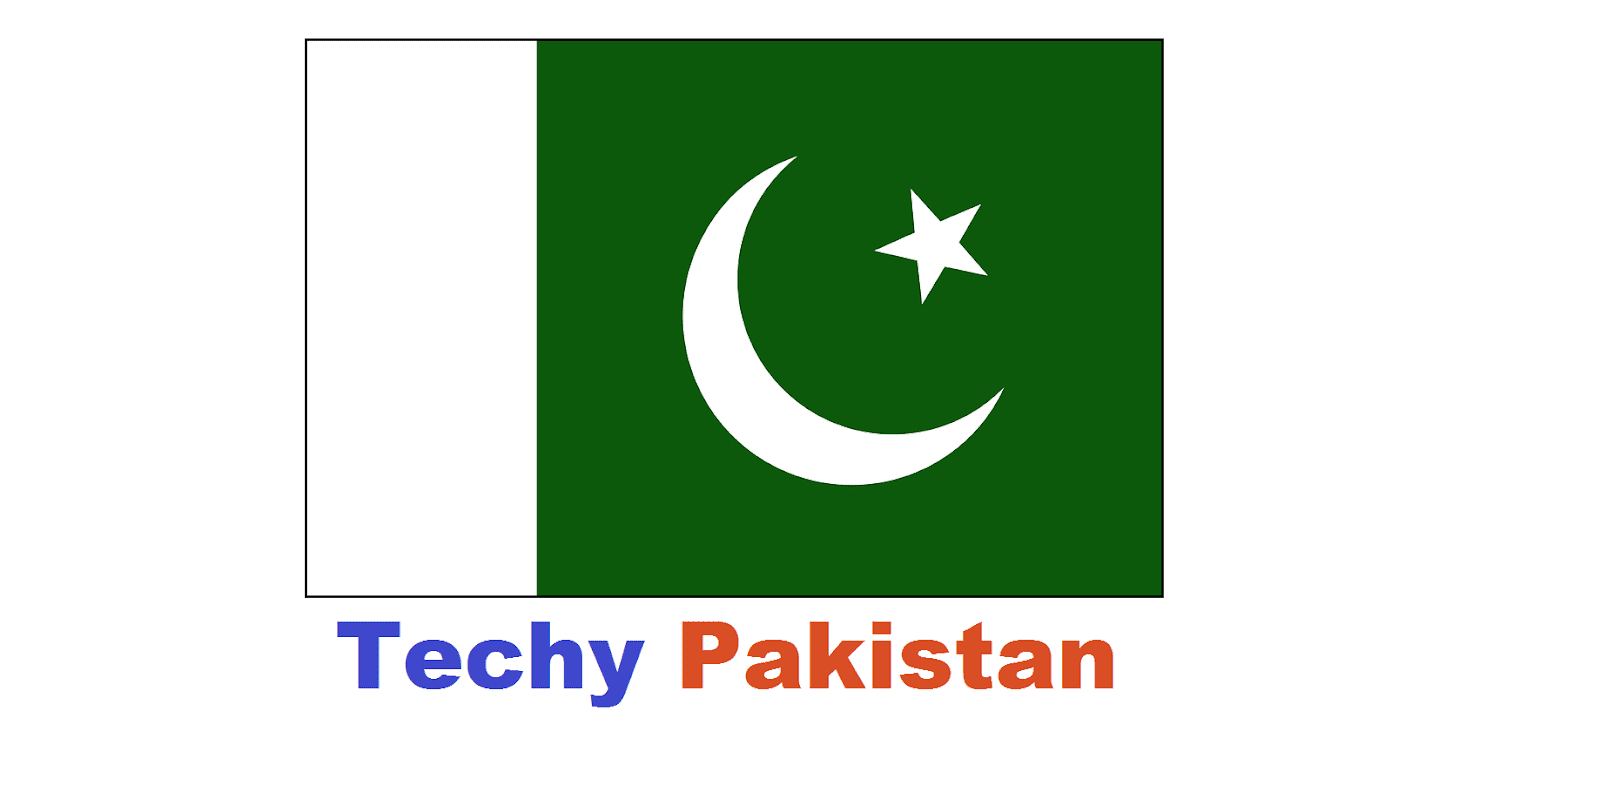 Techy Pakistan - Blogging, SEO, Google AdSense